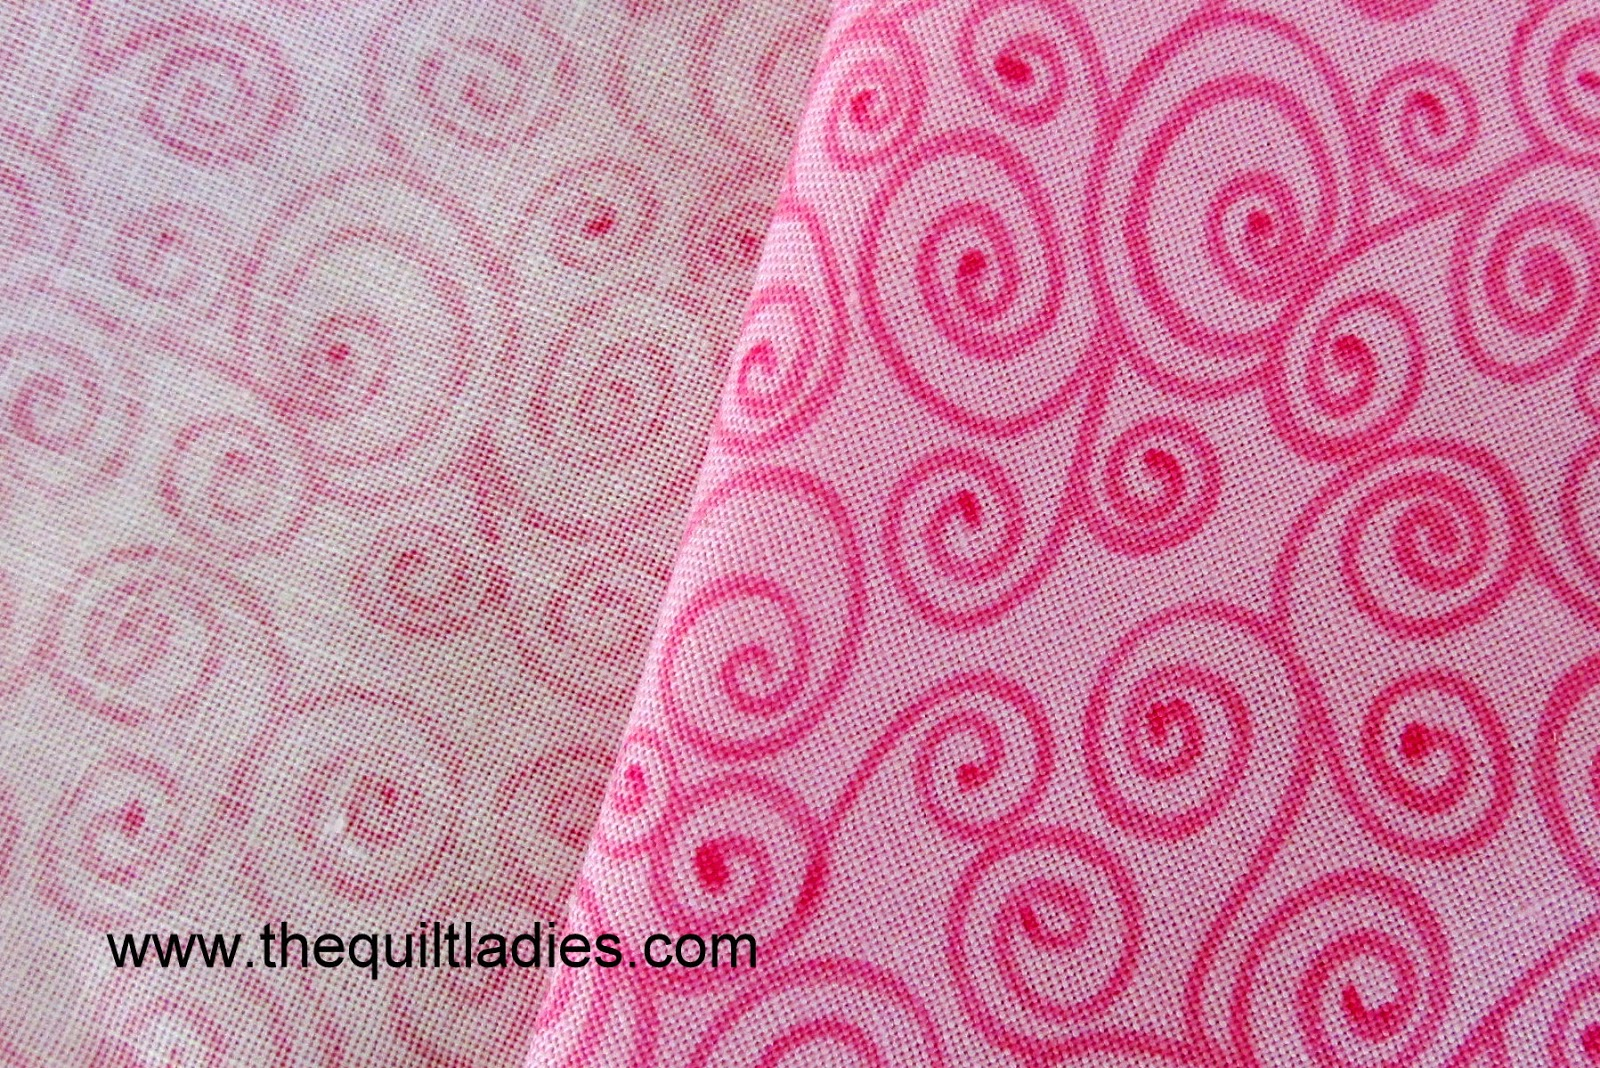 how to mend an old quilt tutorial